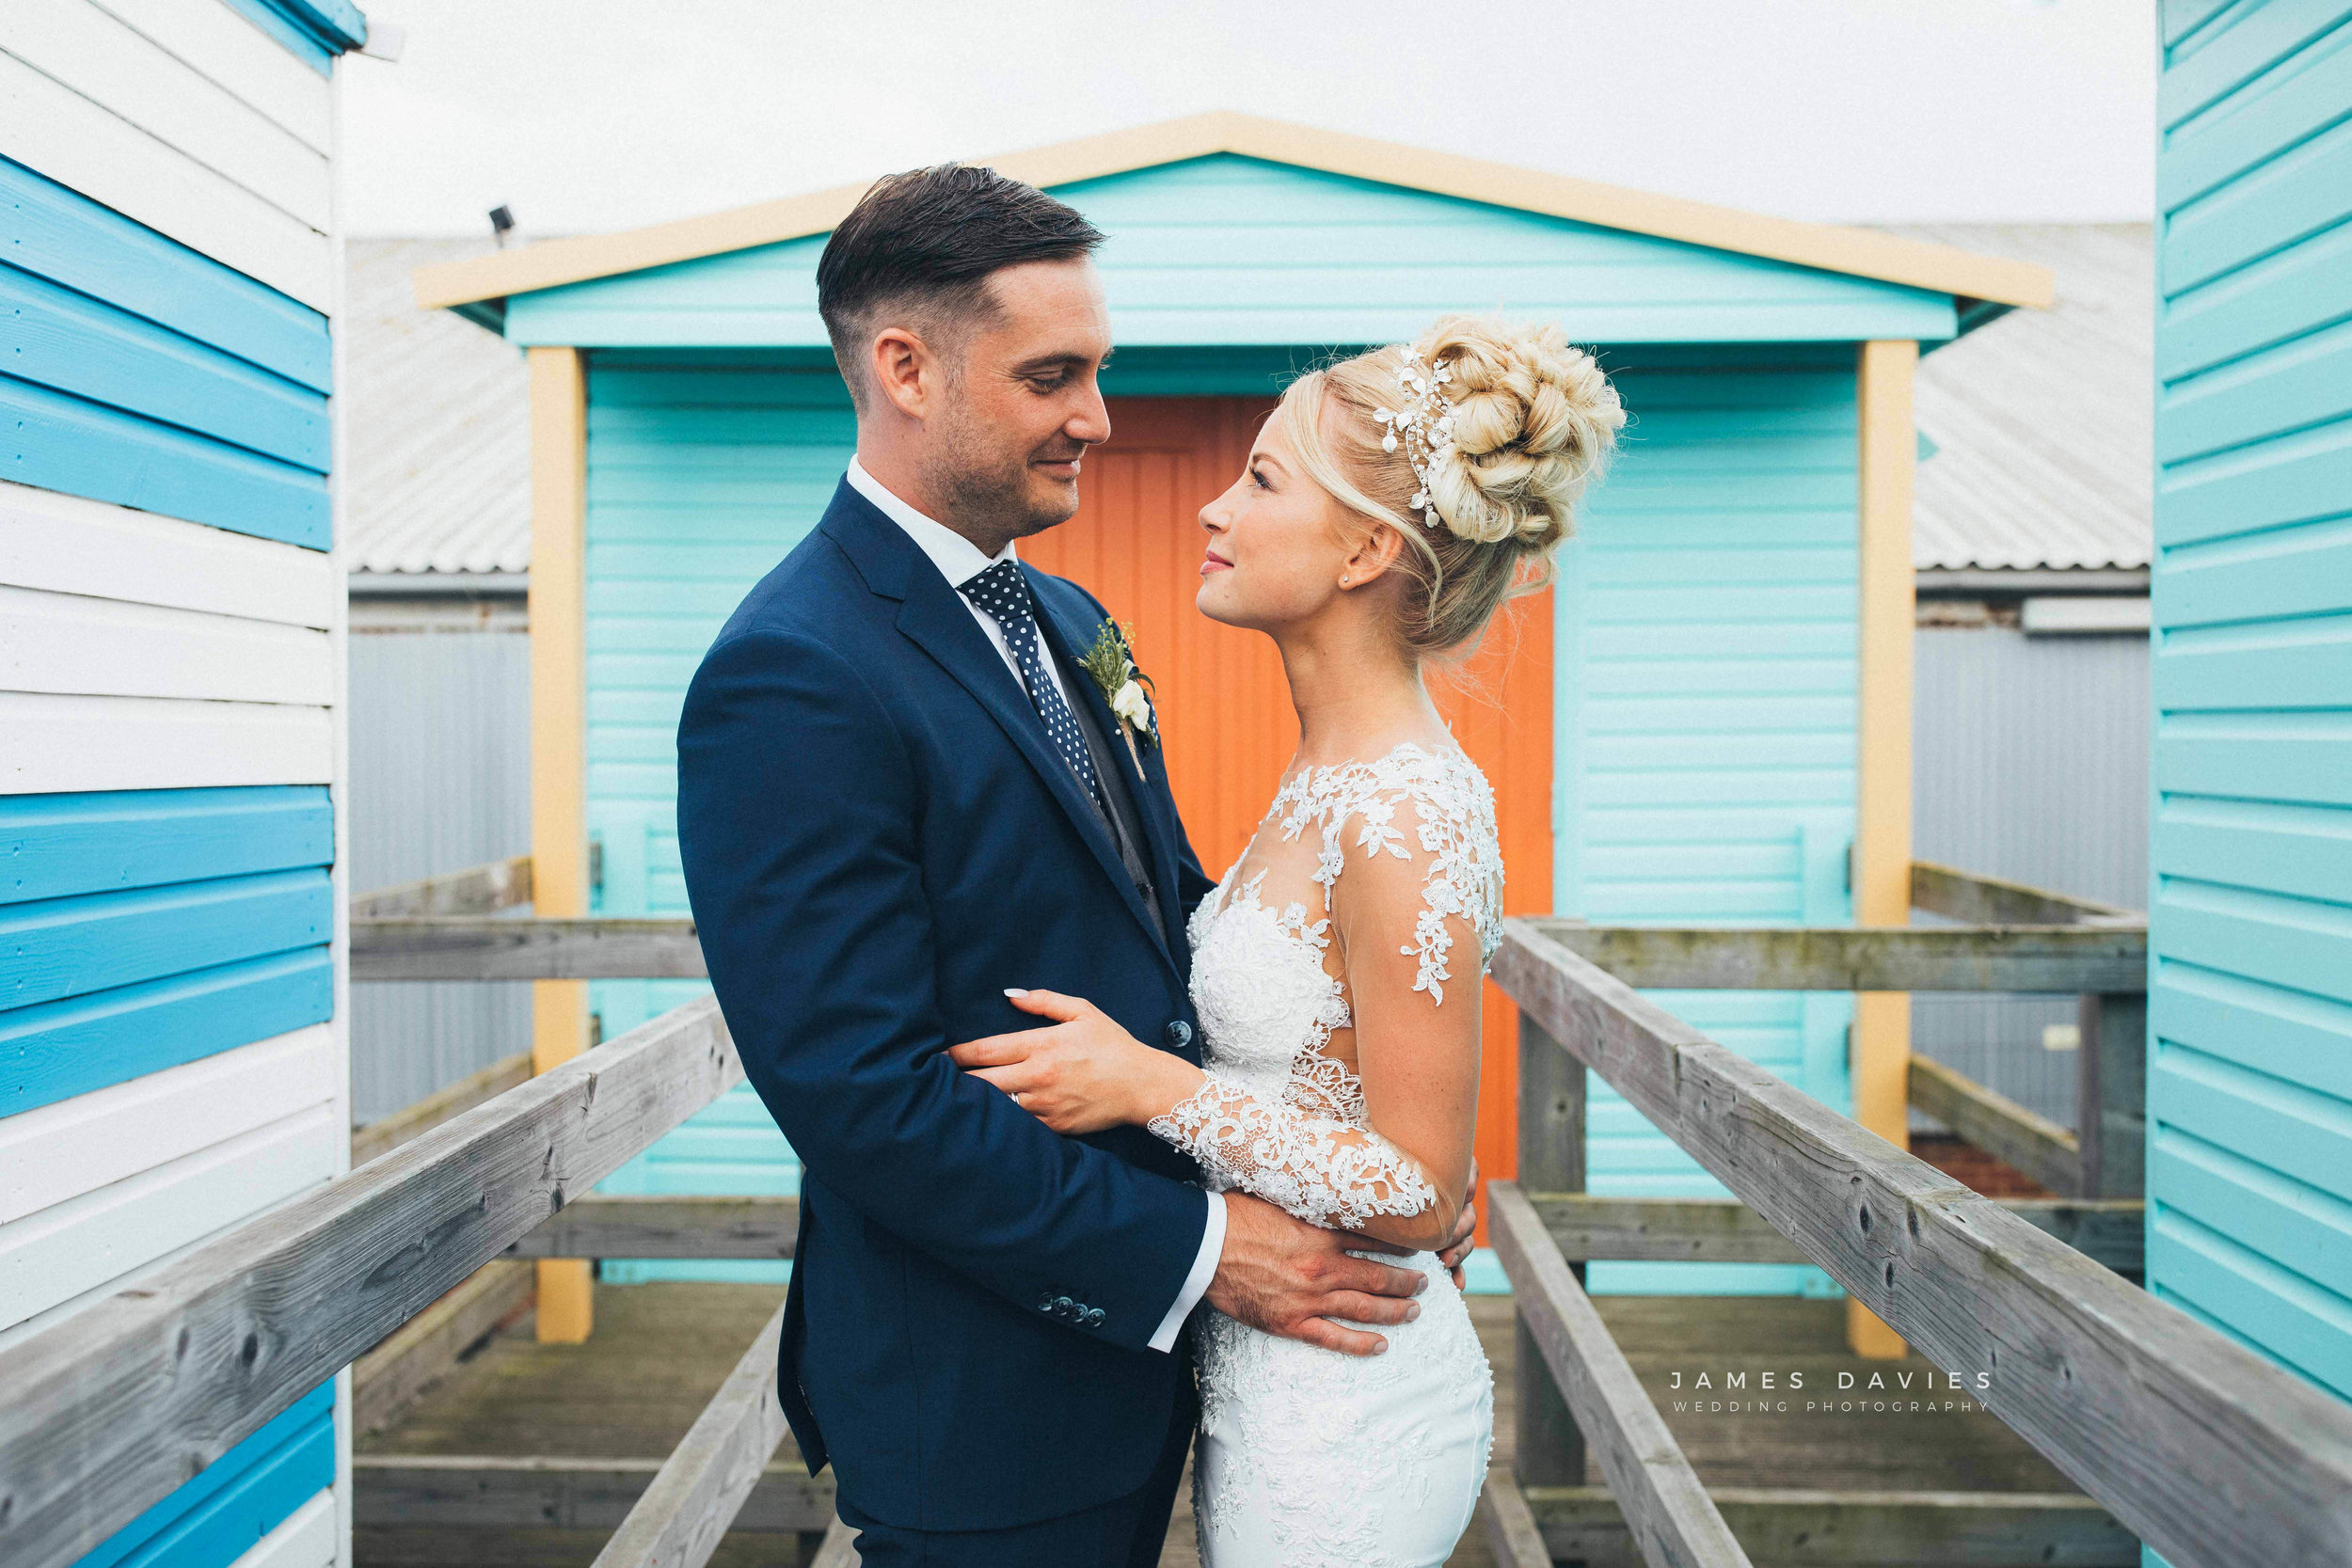 kent wedding photographer james davies